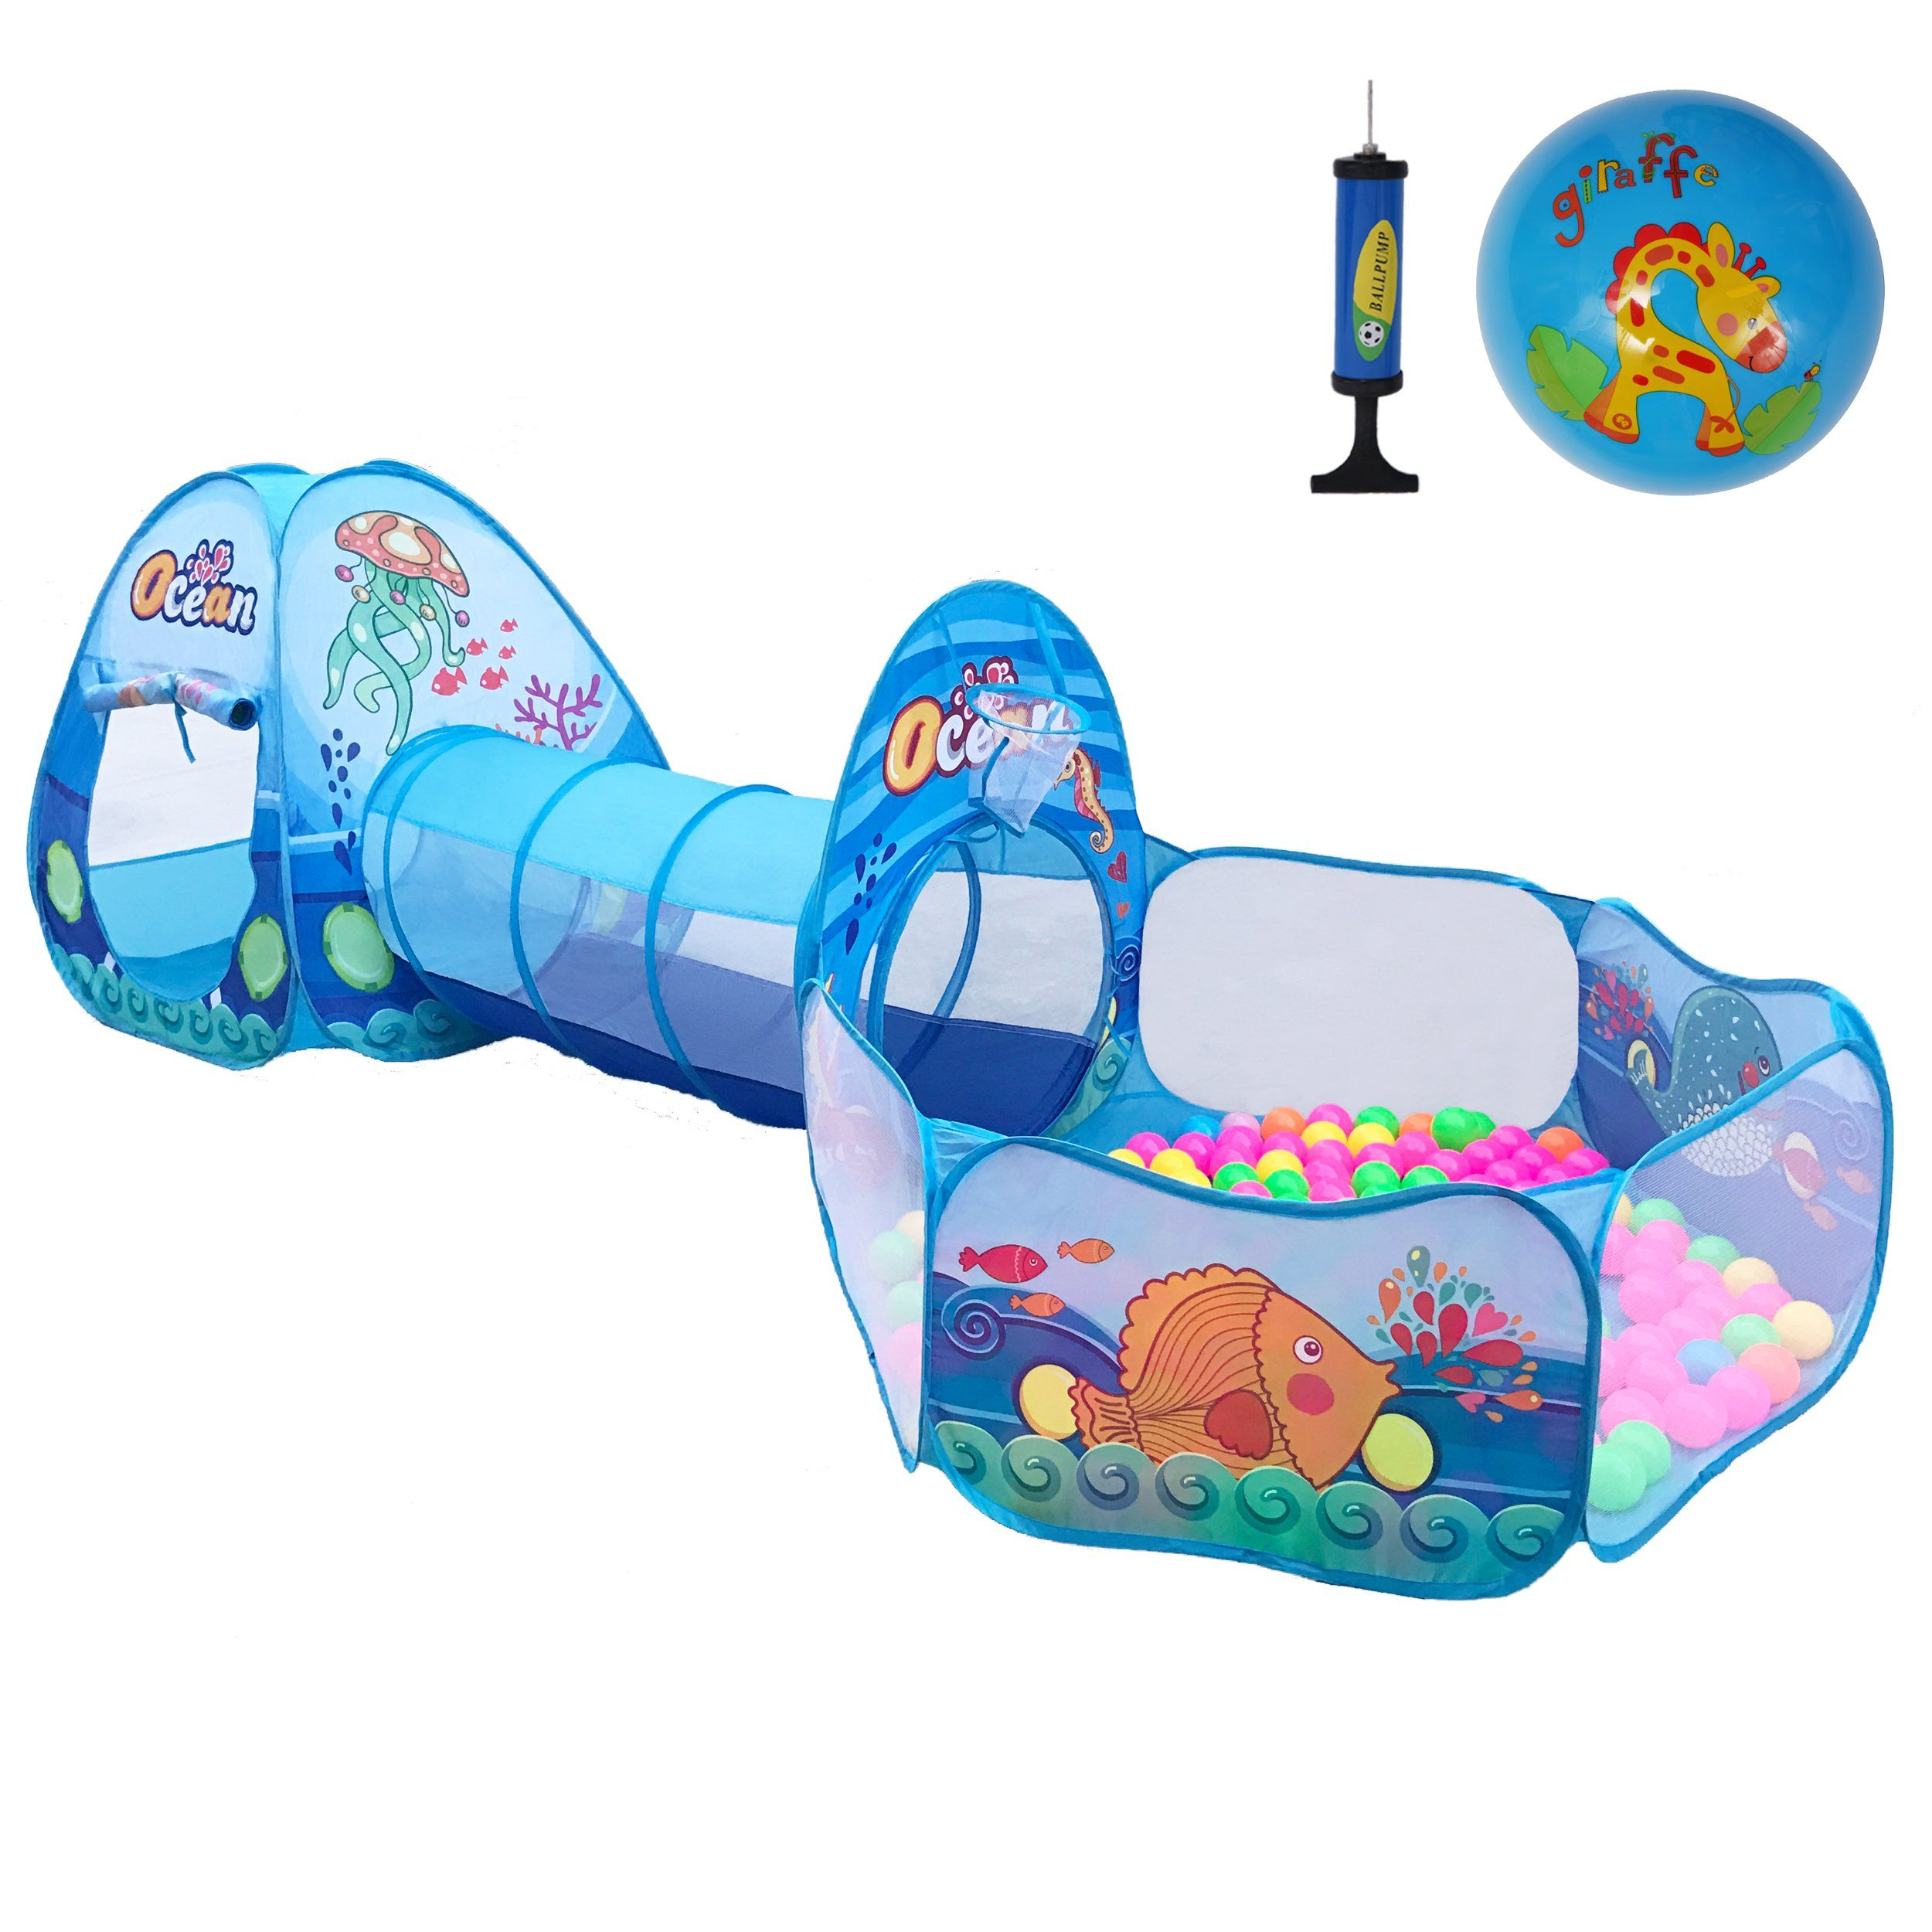 Newest Ocean Theme 3Pcs Kids Play Tent with Tunnel Ball Pits Indoor and Outdoor Children Playhouse  sc 1 st  Pinterest & Newest Ocean Theme 3Pcs Kids Play Tent with Tunnel Ball Pits ...